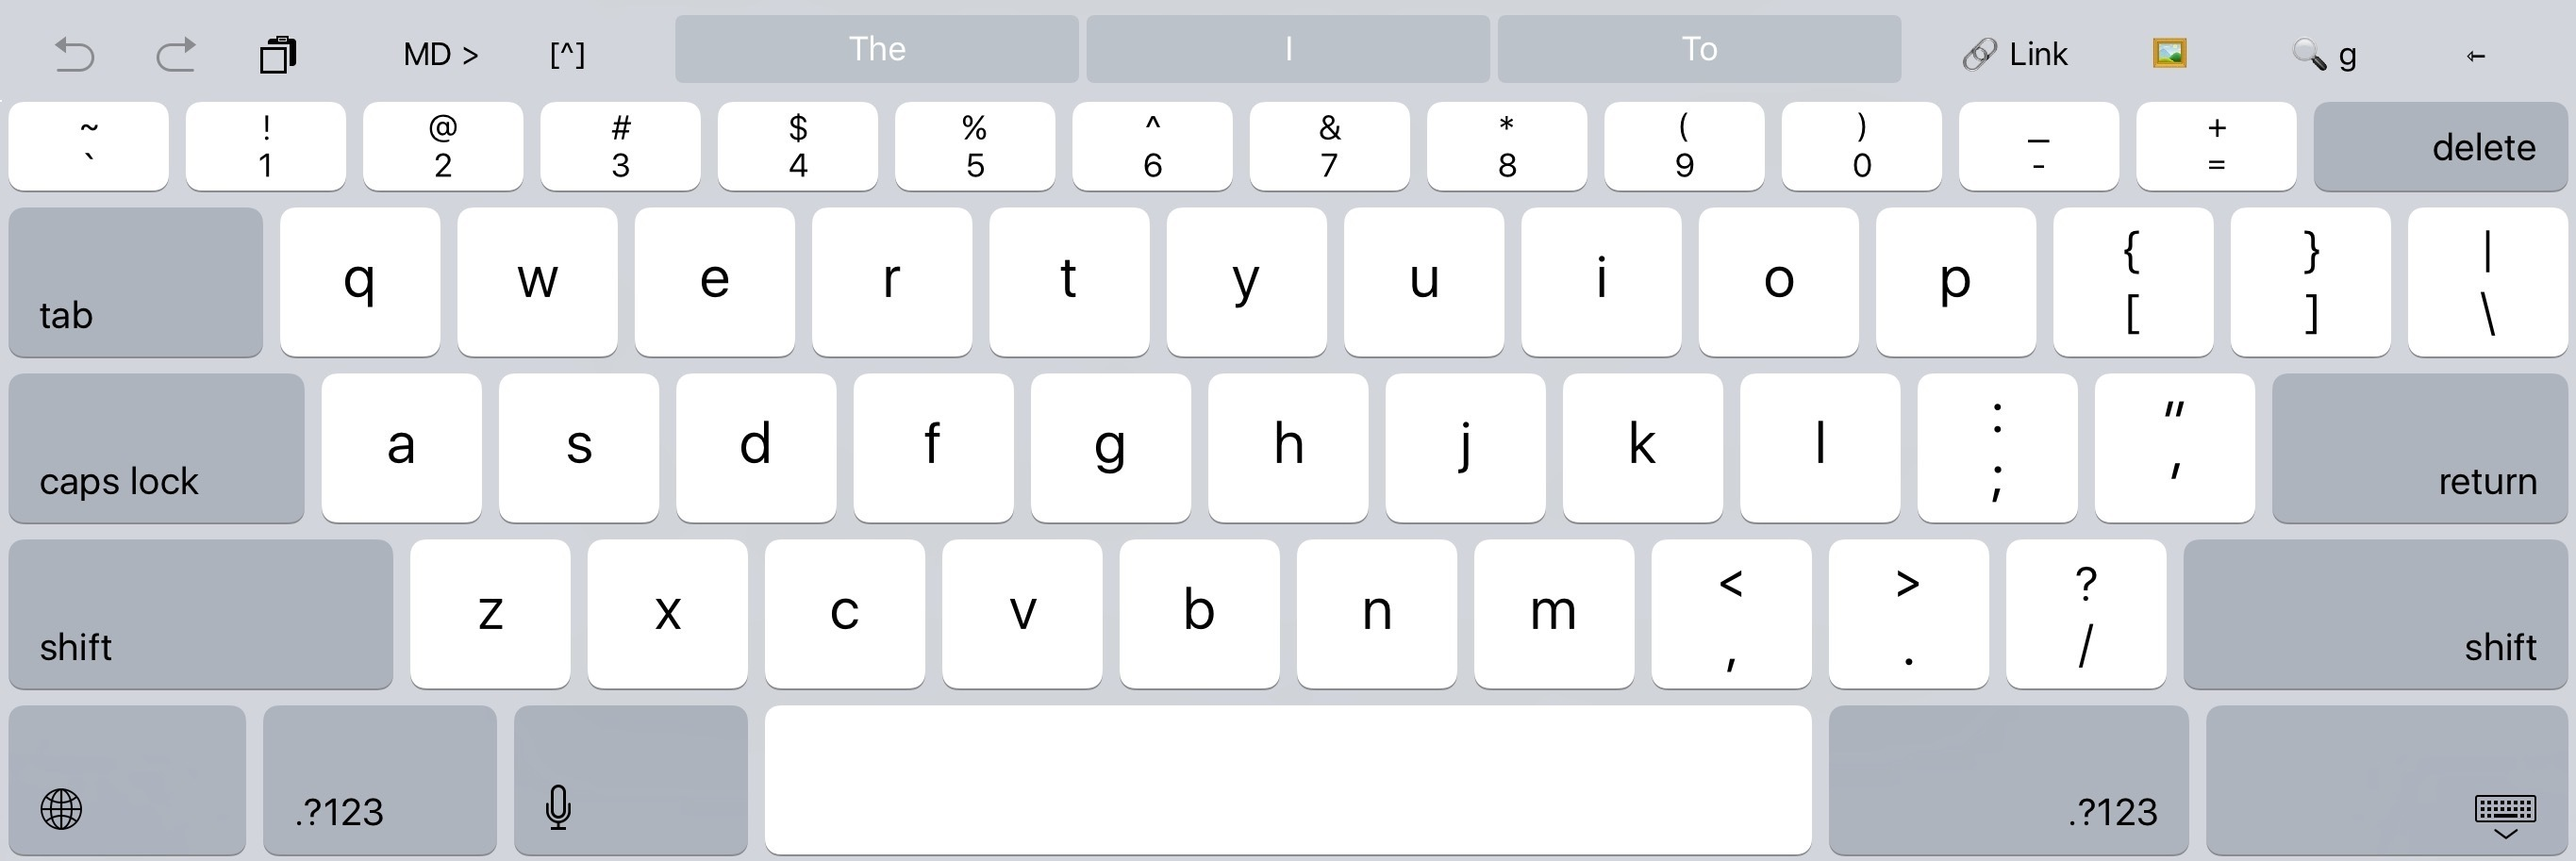 My Shortcut Bar in Drafts. Those custom keys stay visible in Split View.